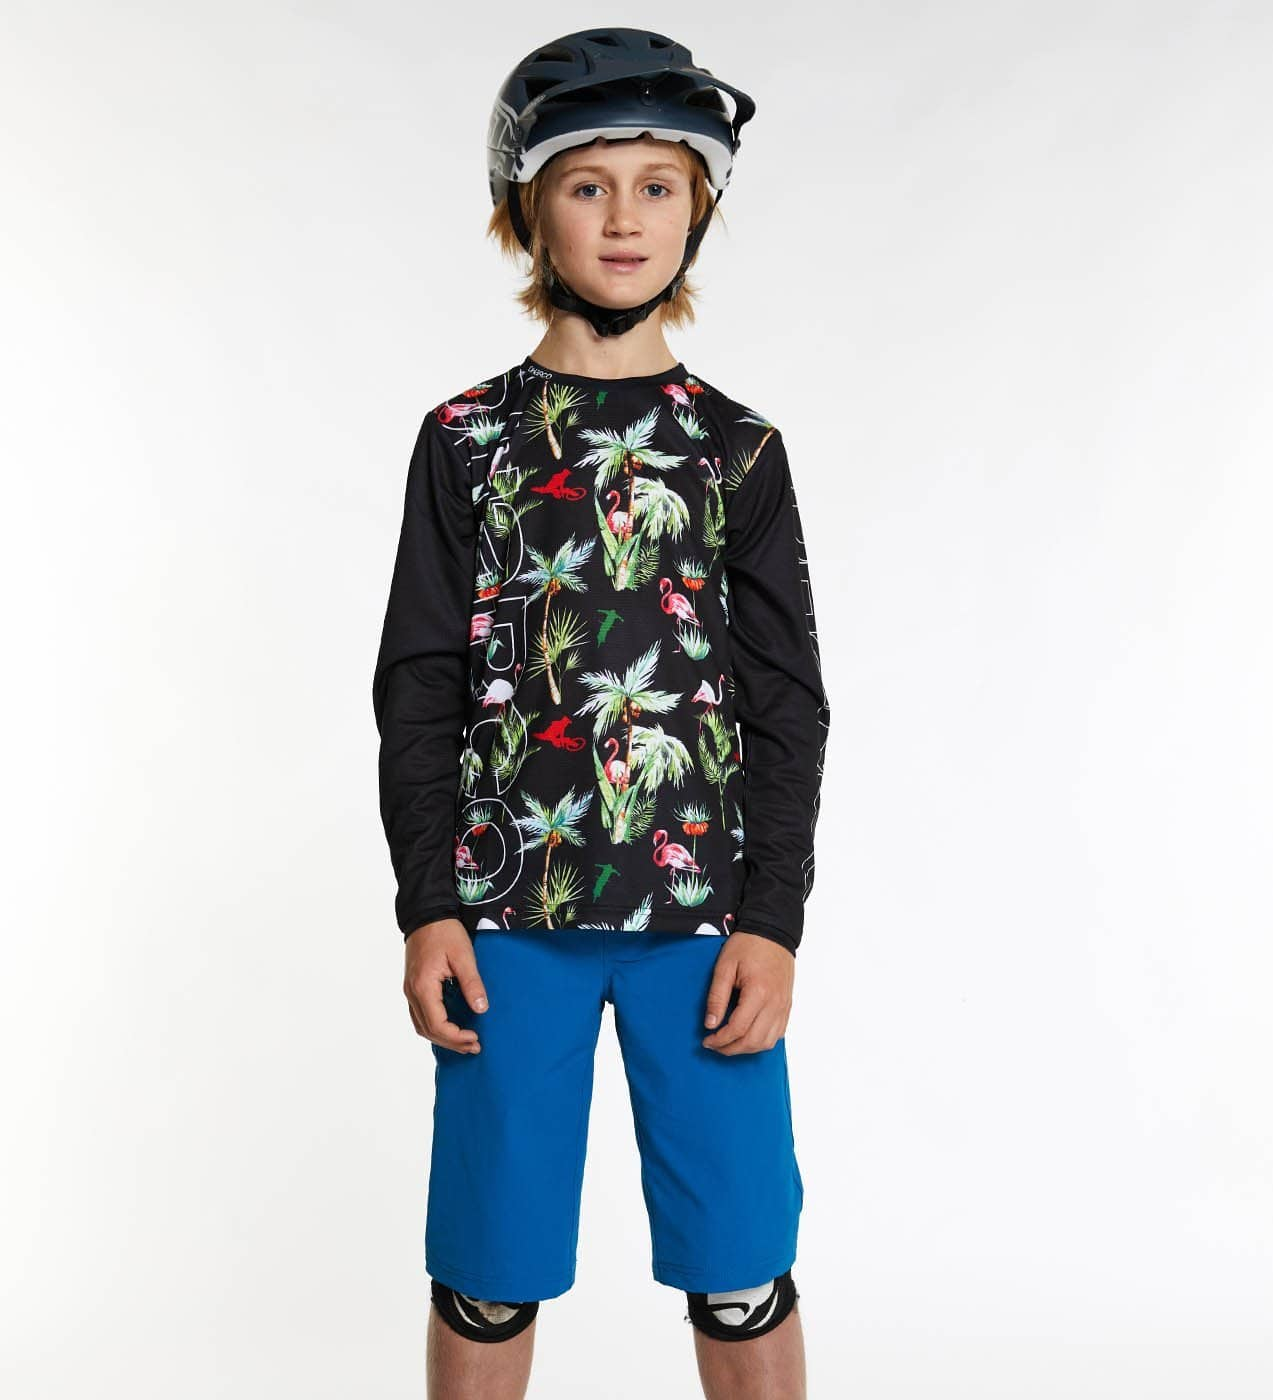 DHaRCO MTB / DH Kids Gravity Jersey | Party Shirt